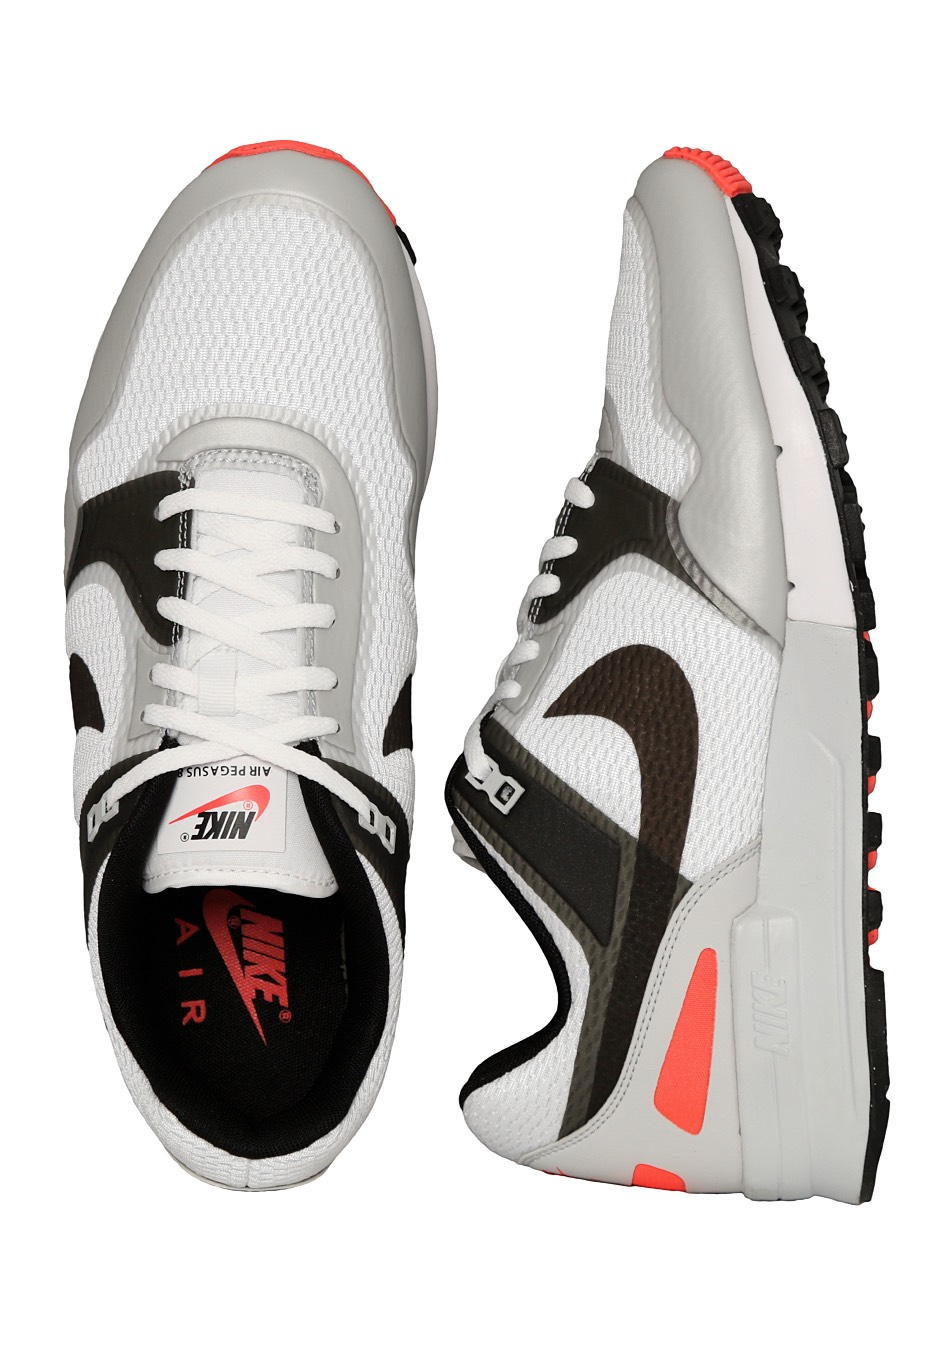 buy online d14d2 a9e60 Nike - Air Pegasus  89 NS White Anthracite Bright Crimson - Shoes -  Impericon.com UK